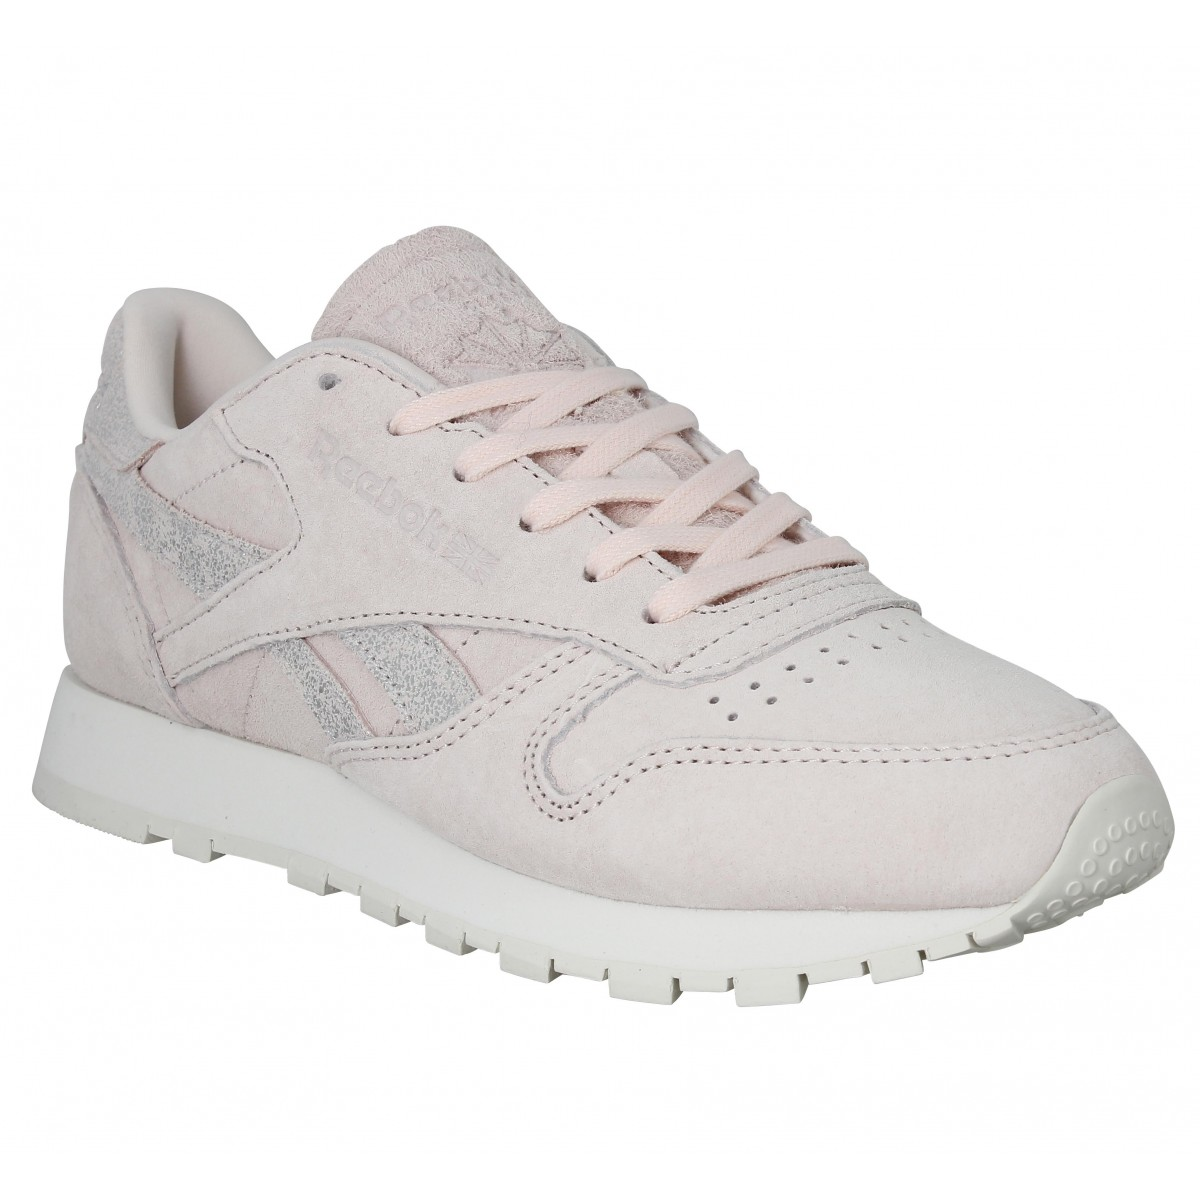 Reebok Femme Leather Velours Fanny Shimmer Classic Rose xIHr58xq